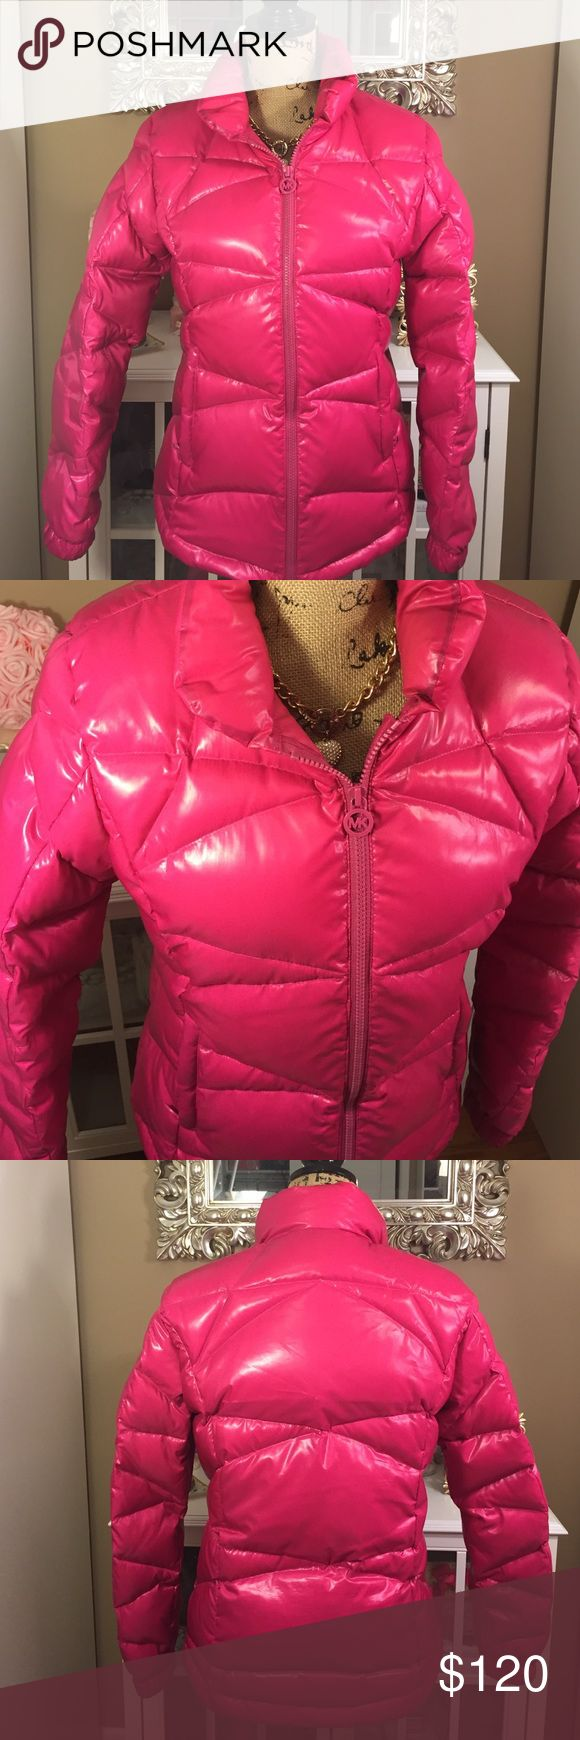 Flash Sale! ✨ Michael Kors Pink Puffer Coat ✨ Adorable hot pink Michael Kors puffer coat ✨ Pockets inside & out. No damages or defects! Michael Kors Jackets & Coats Puffers